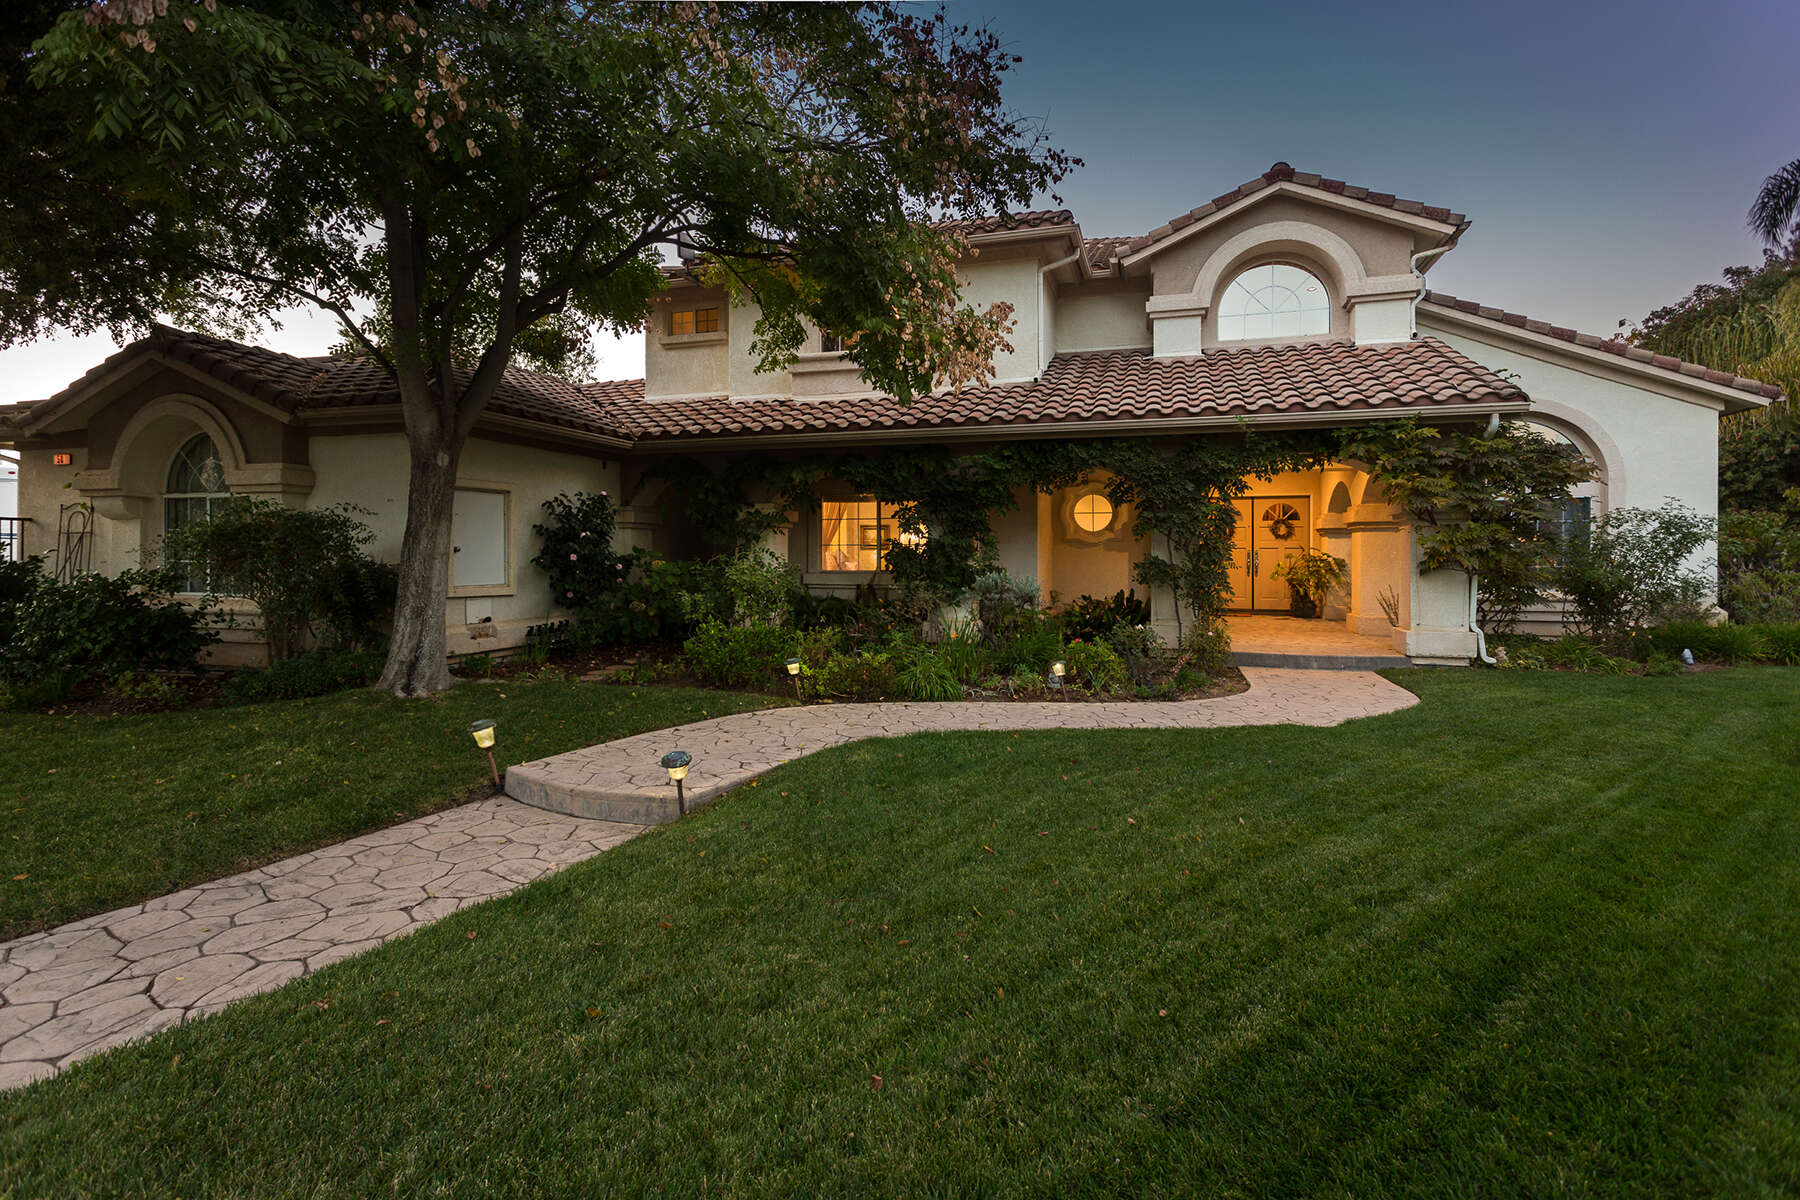 Single Family for Sale at 50 Highland Road Simi Valley, California 93065 United States